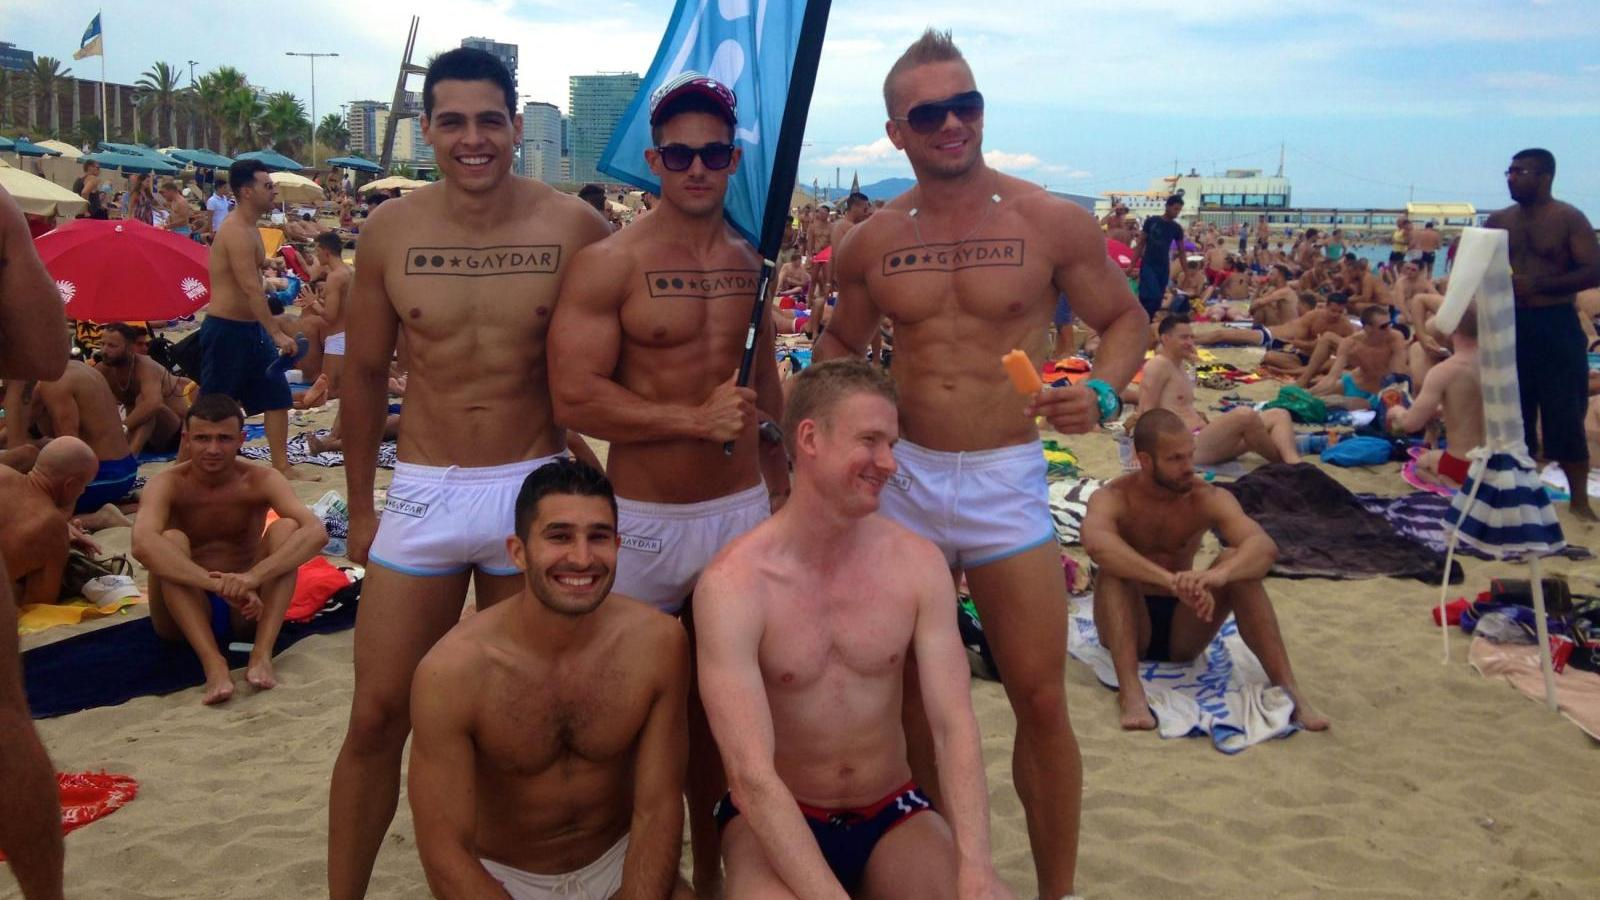 Chilling out with our friends, one the gay beach in Sitges